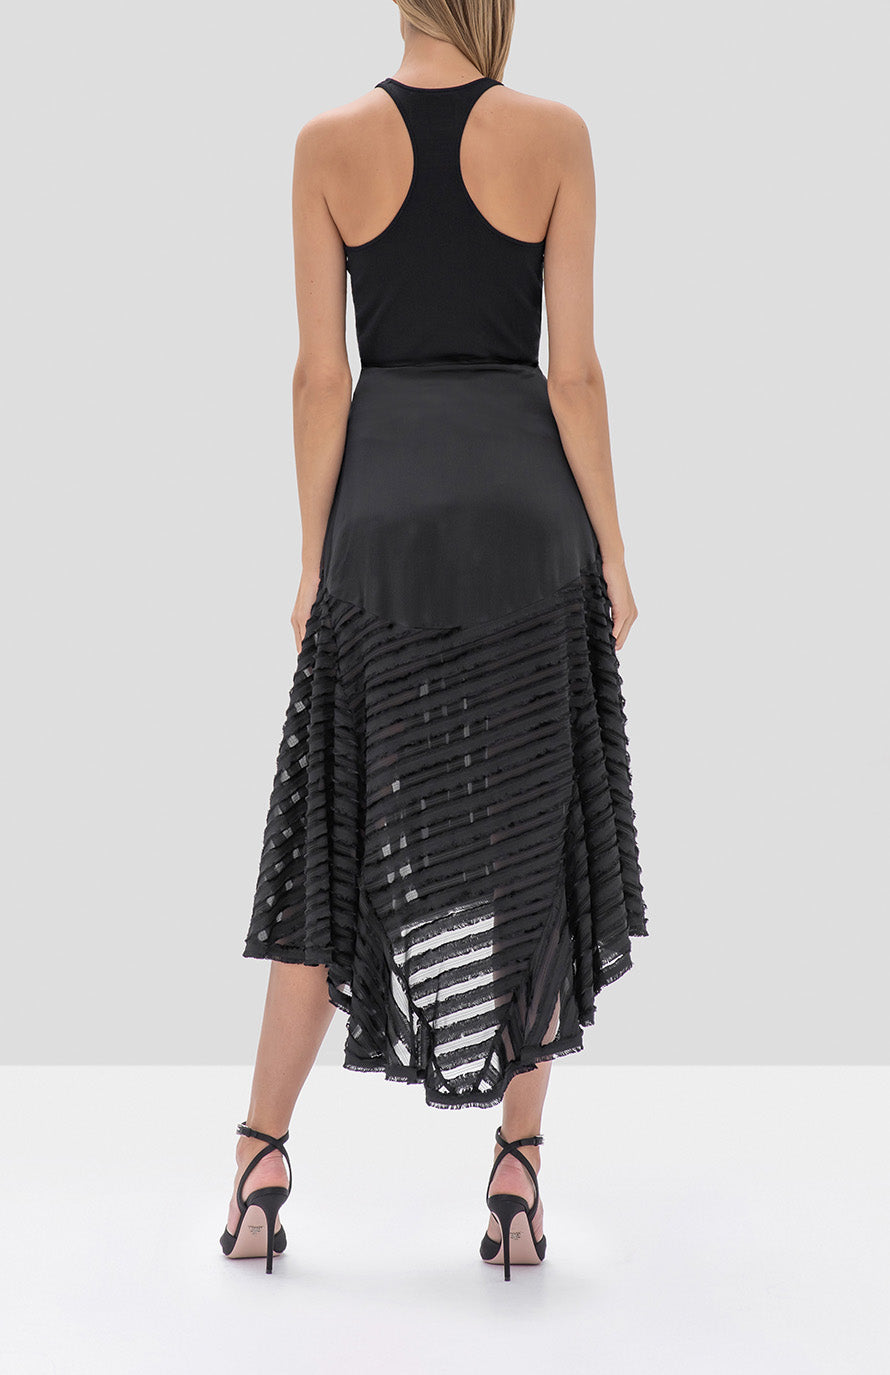 Alexis Danos Skirt in Black from the Fall Winter 2019 Ready To Wear Collection - Rear View